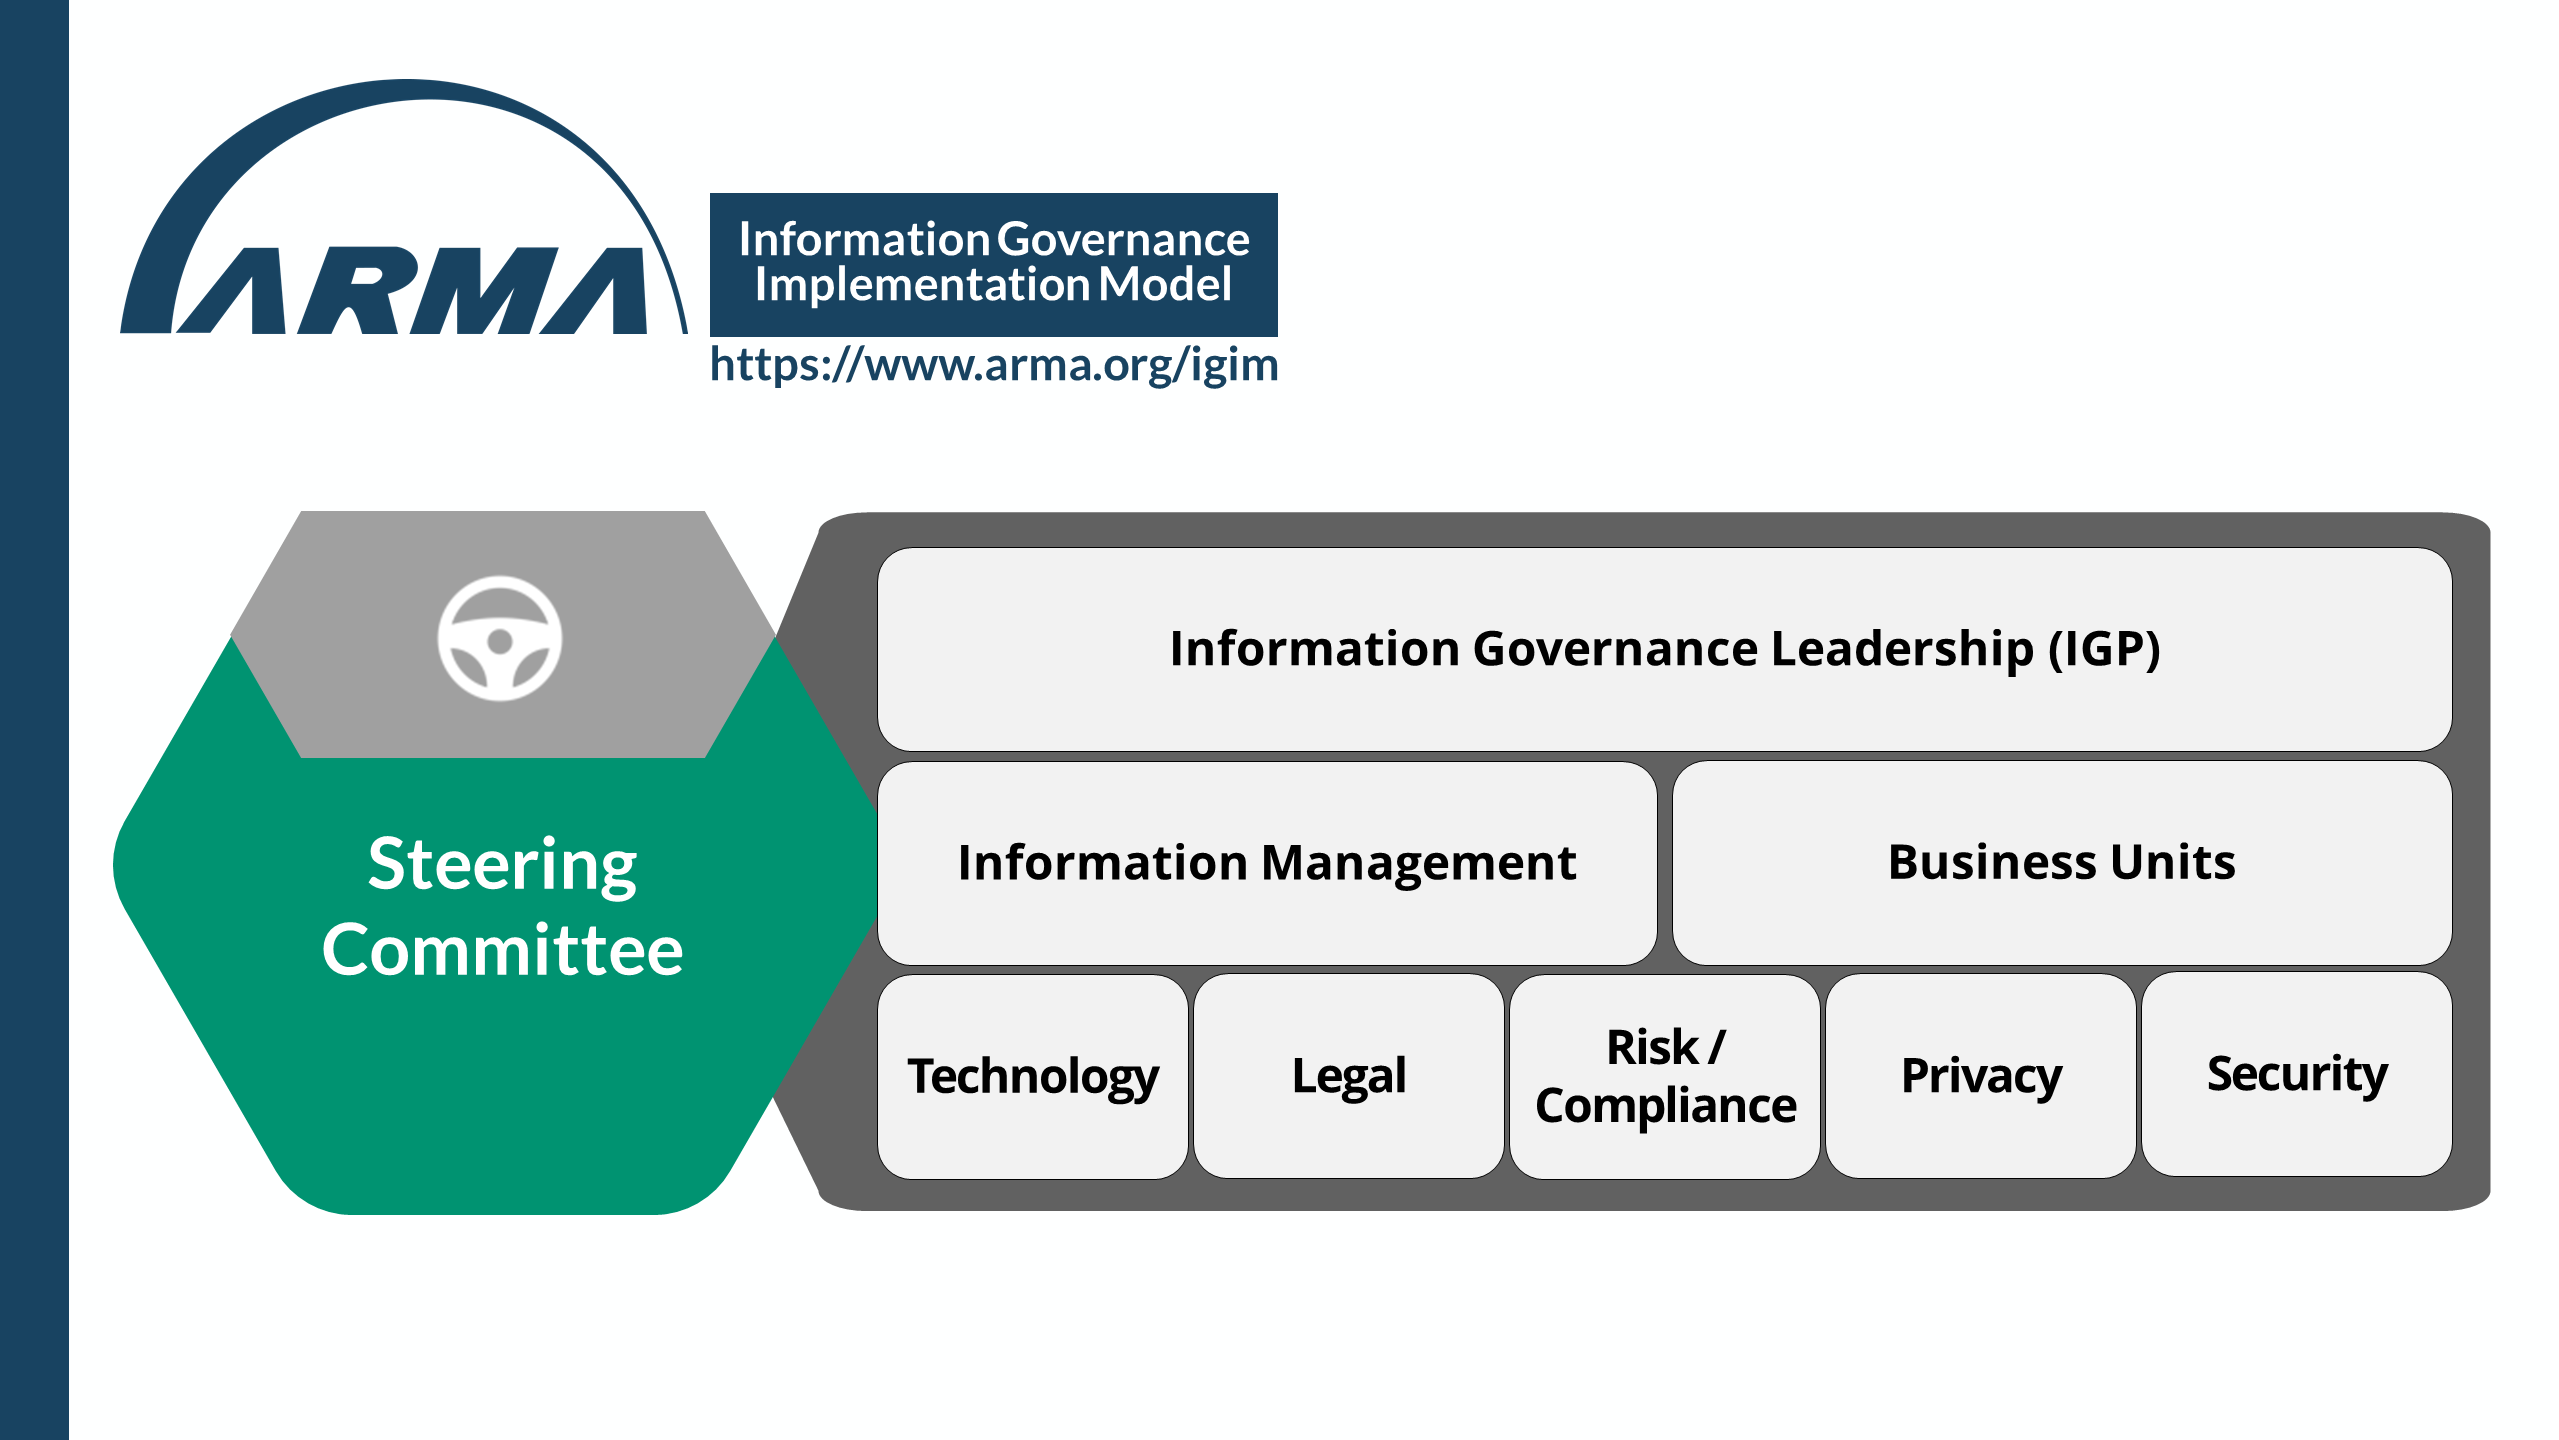 Information Governance Implementation Model - Steering Committee